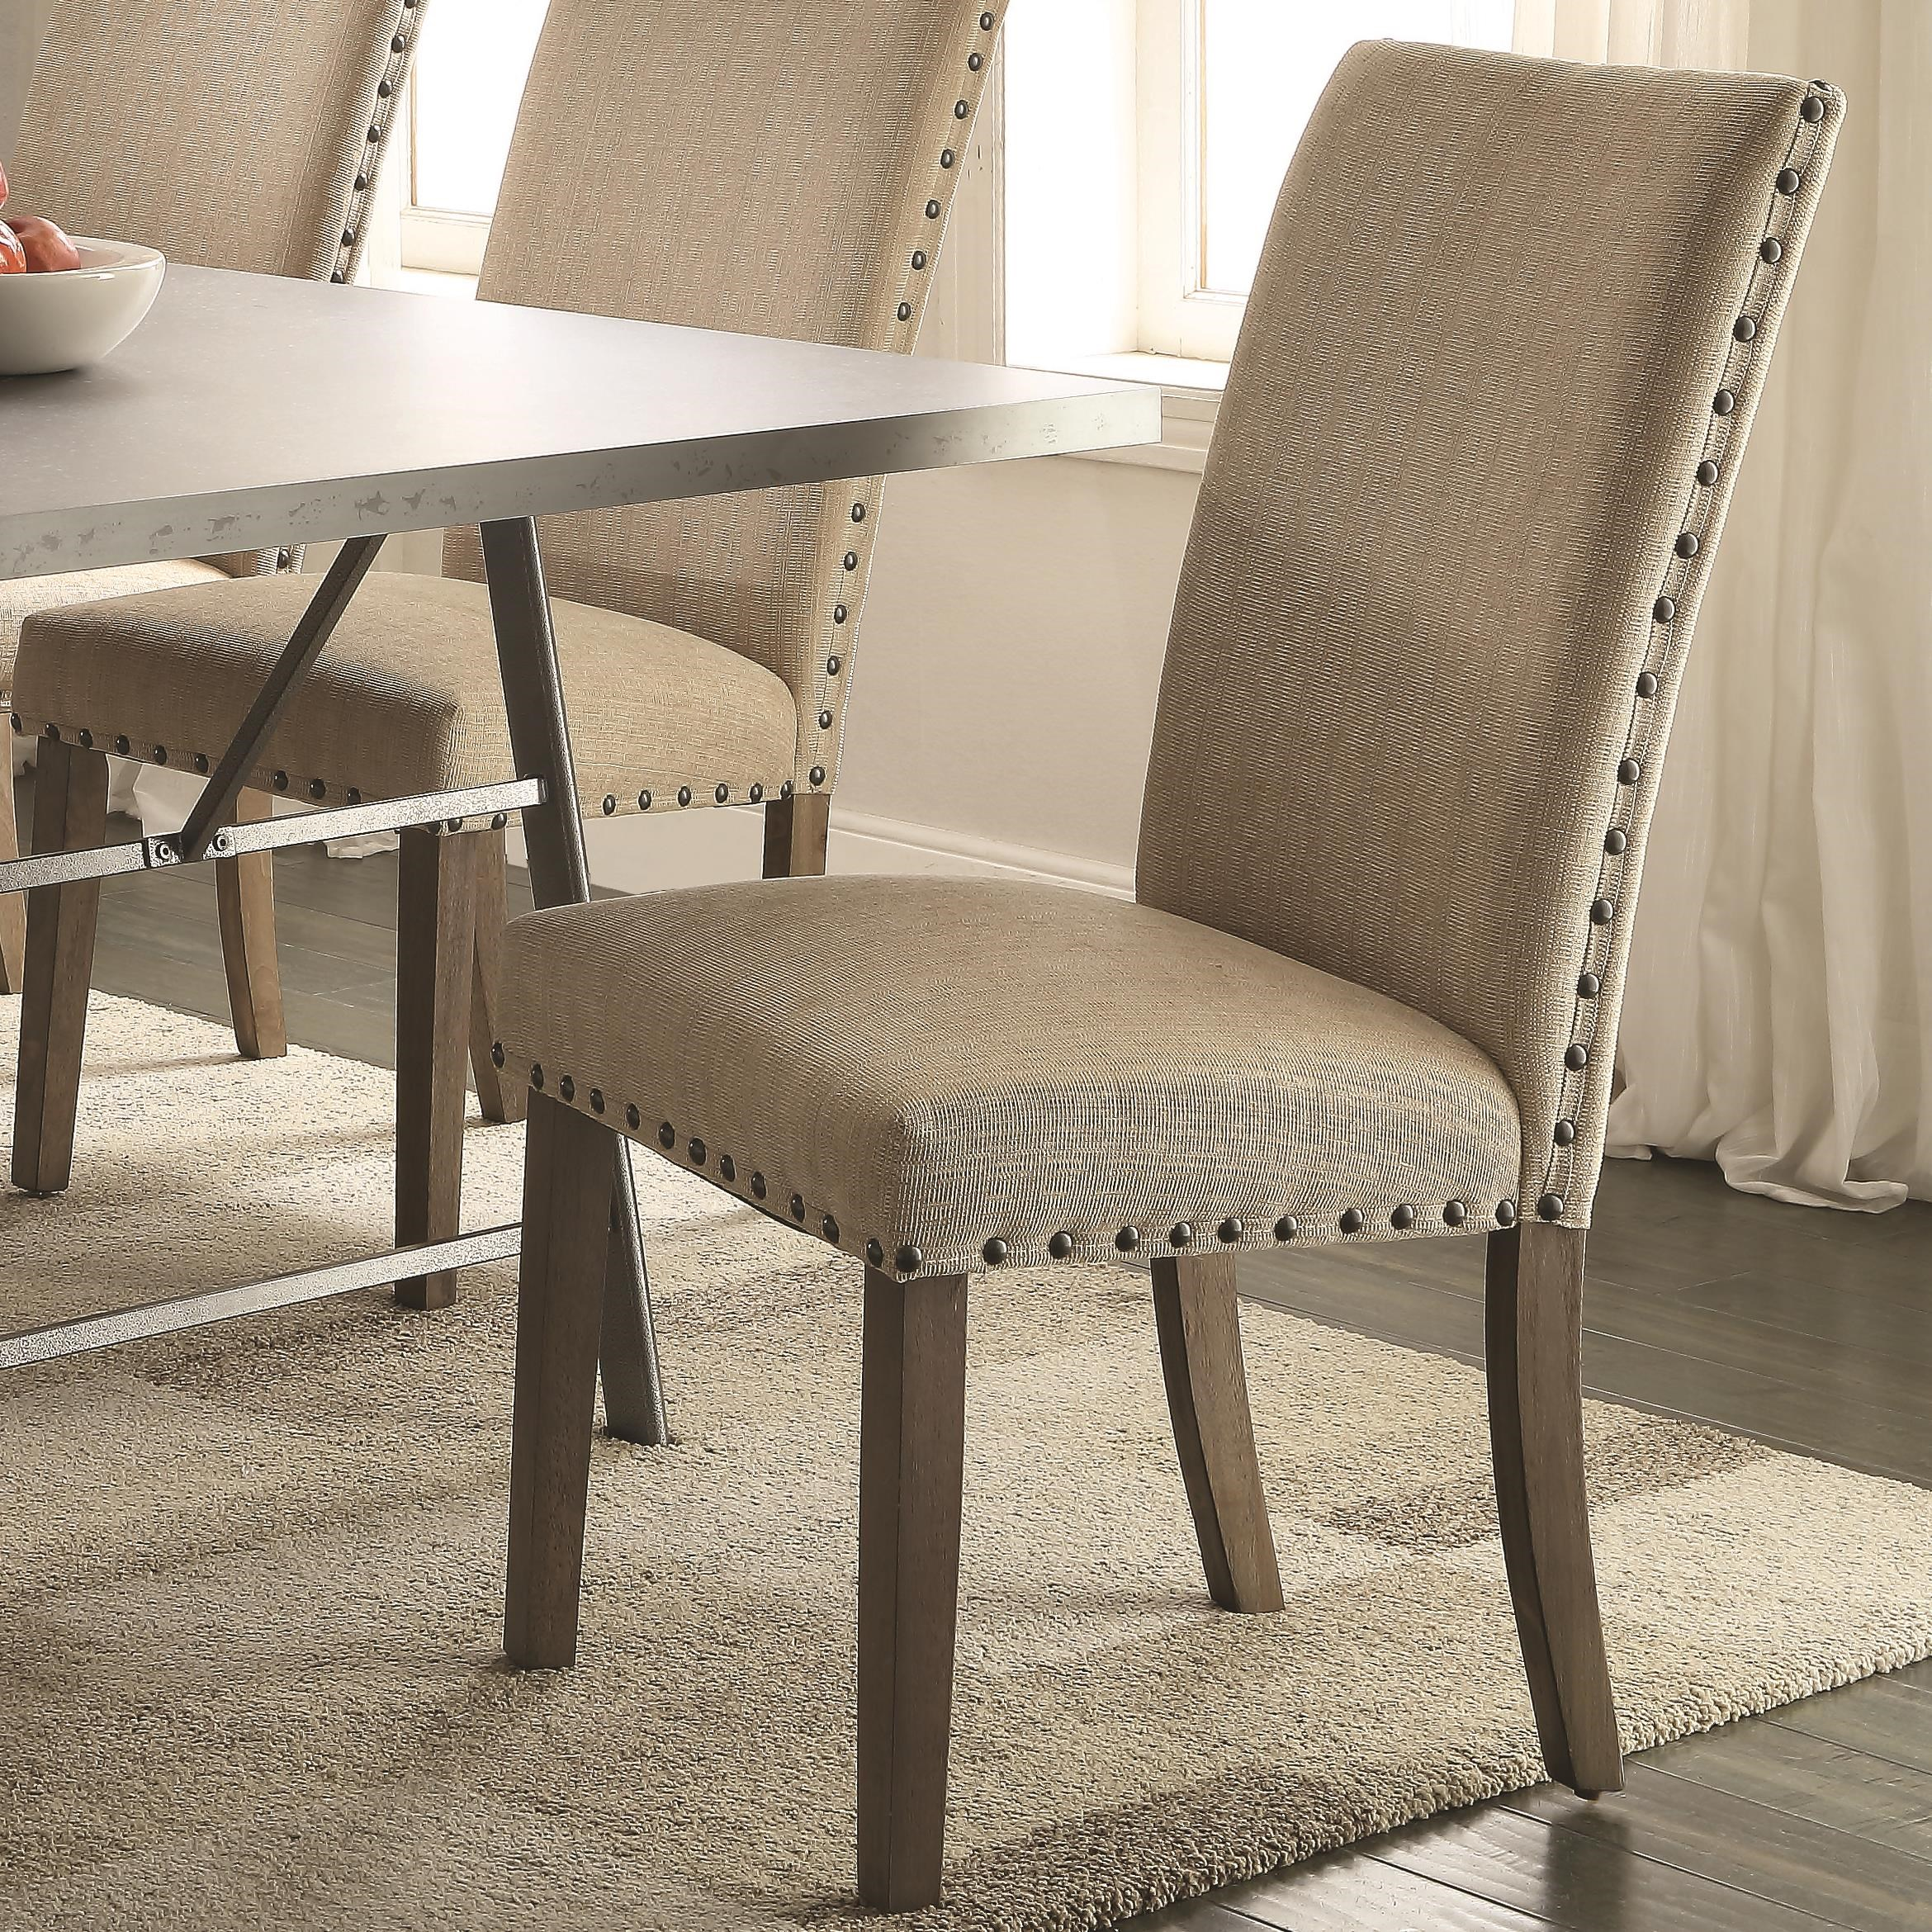 coaster amherst casual parson chair with tan fabric upholstery and nailhead trim del sol furniture dining side chairs